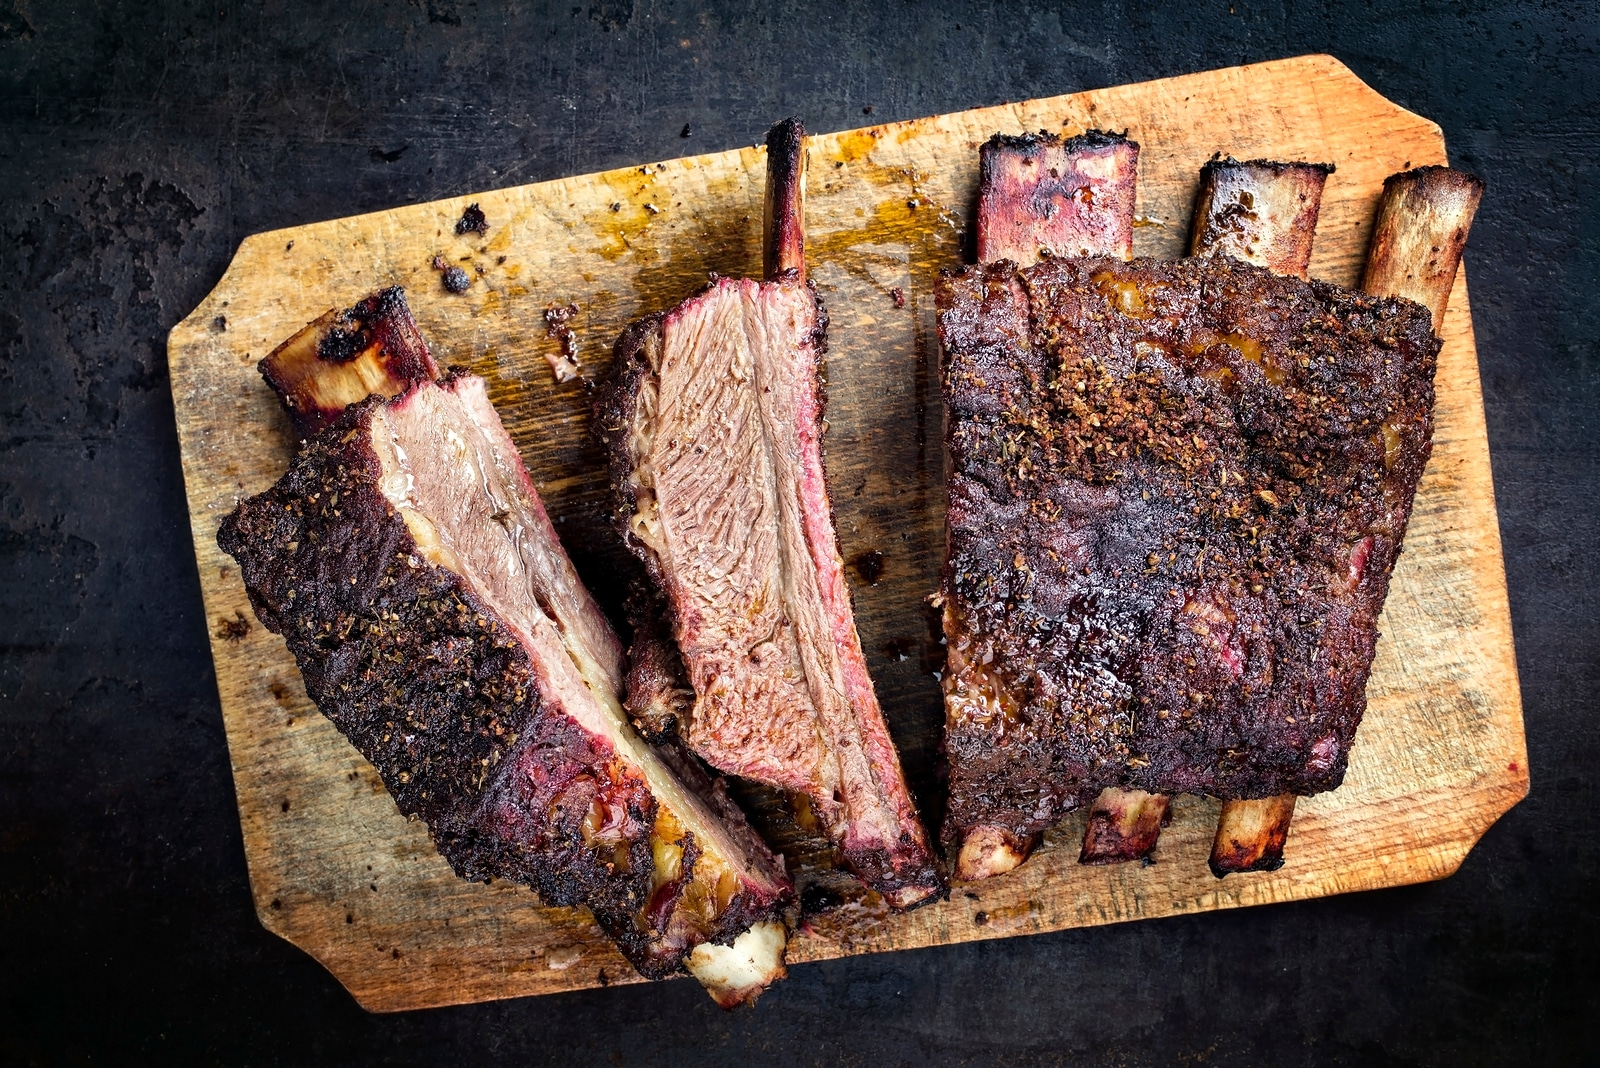 Barbecue chuck beef ribs with hot rub